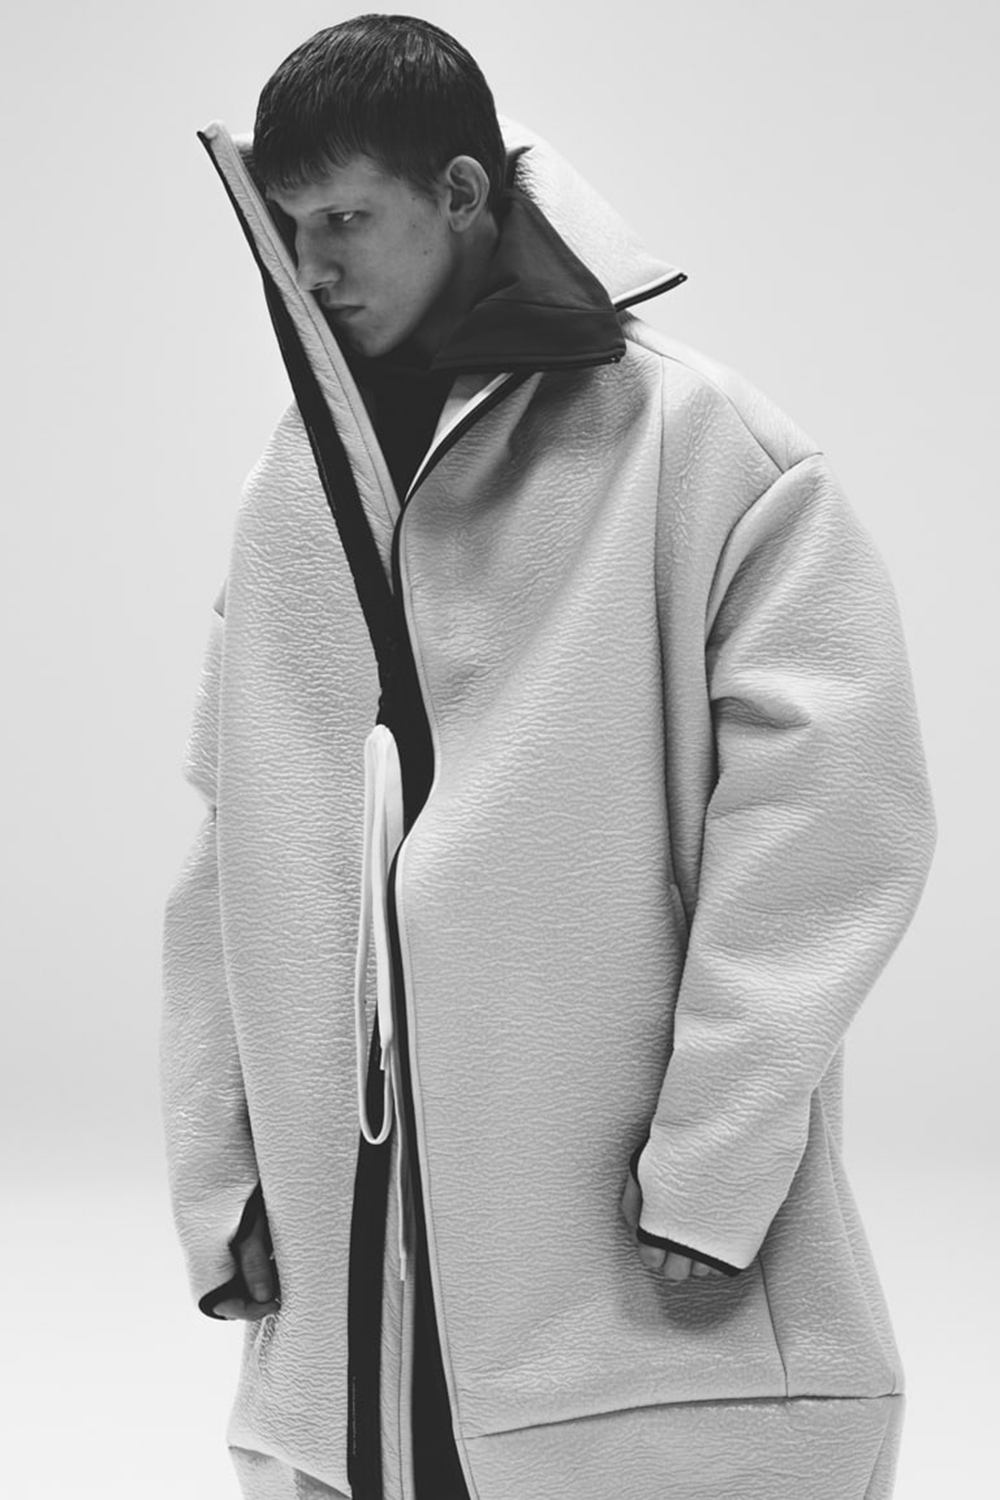 JULIUS & NILøS MMXX (20-21)FW collection The R Reservation Exhibition 02